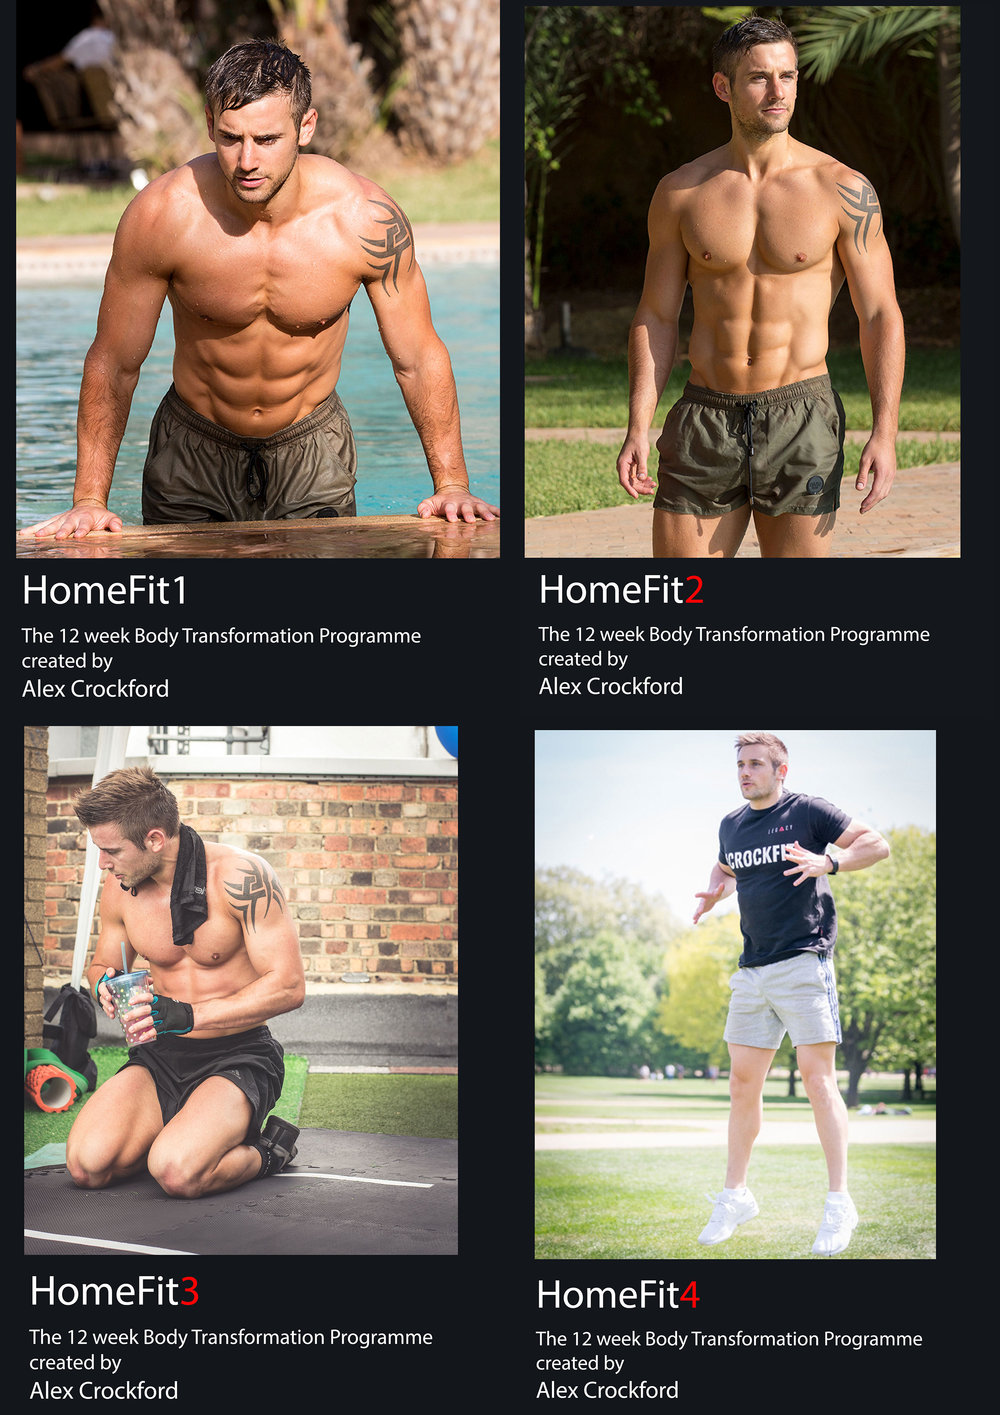 HomeFit---1-year-plan.jpg